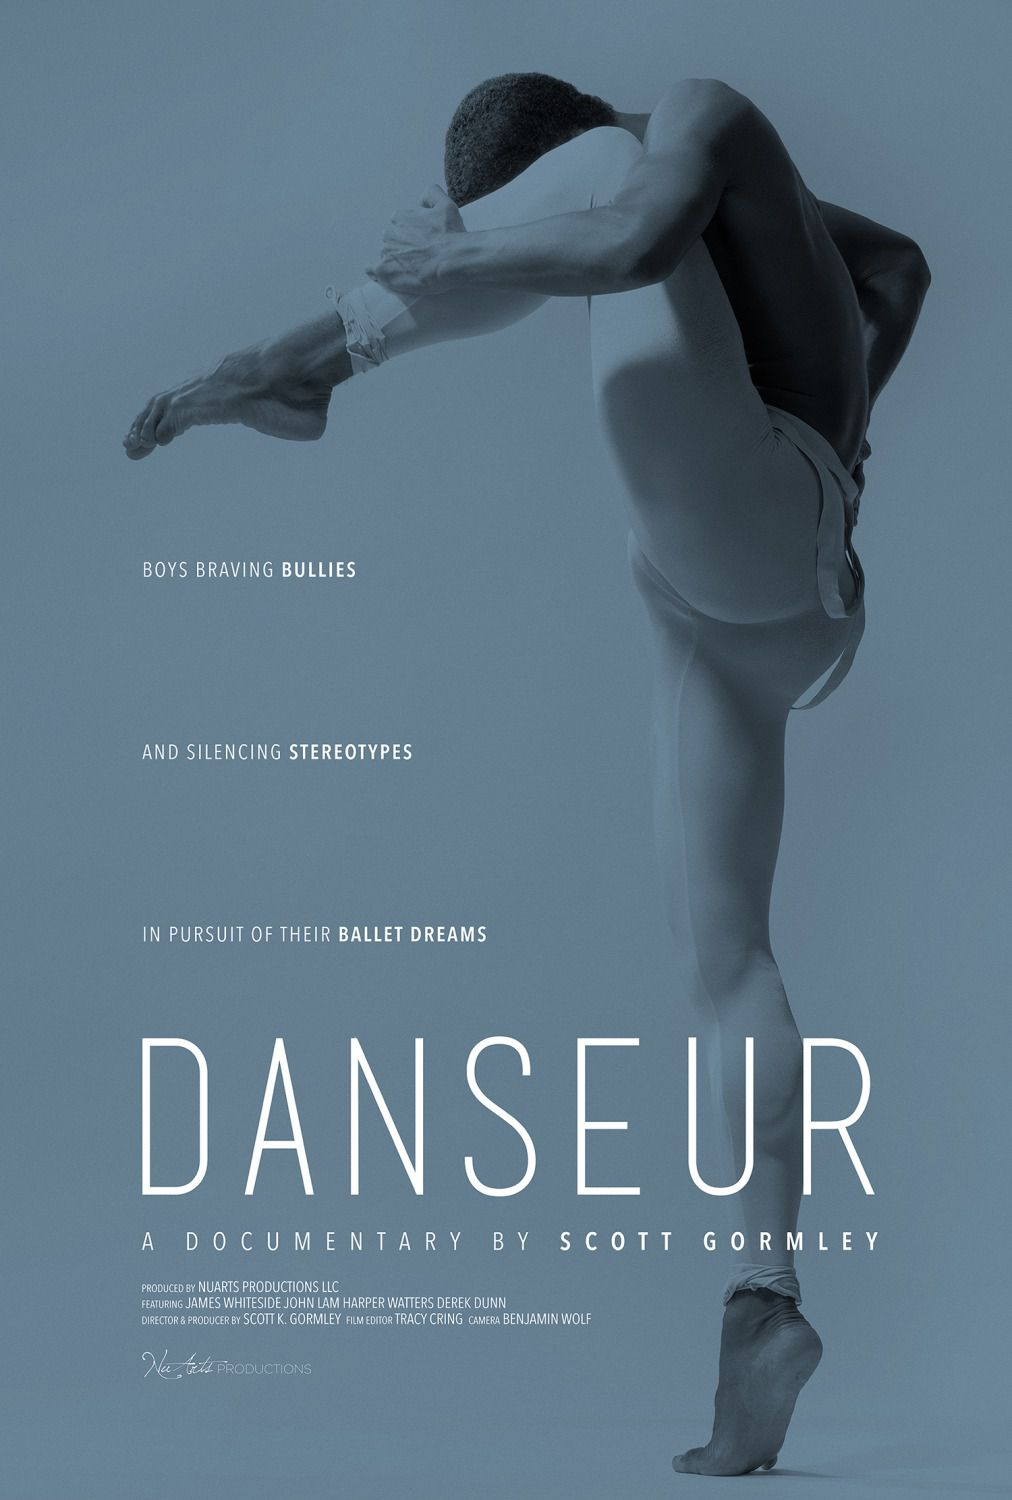 Danseur - Documentary Film - Boys braving bullies and silencing stereotypes in pursuit of their ballet dreams - poster 2018